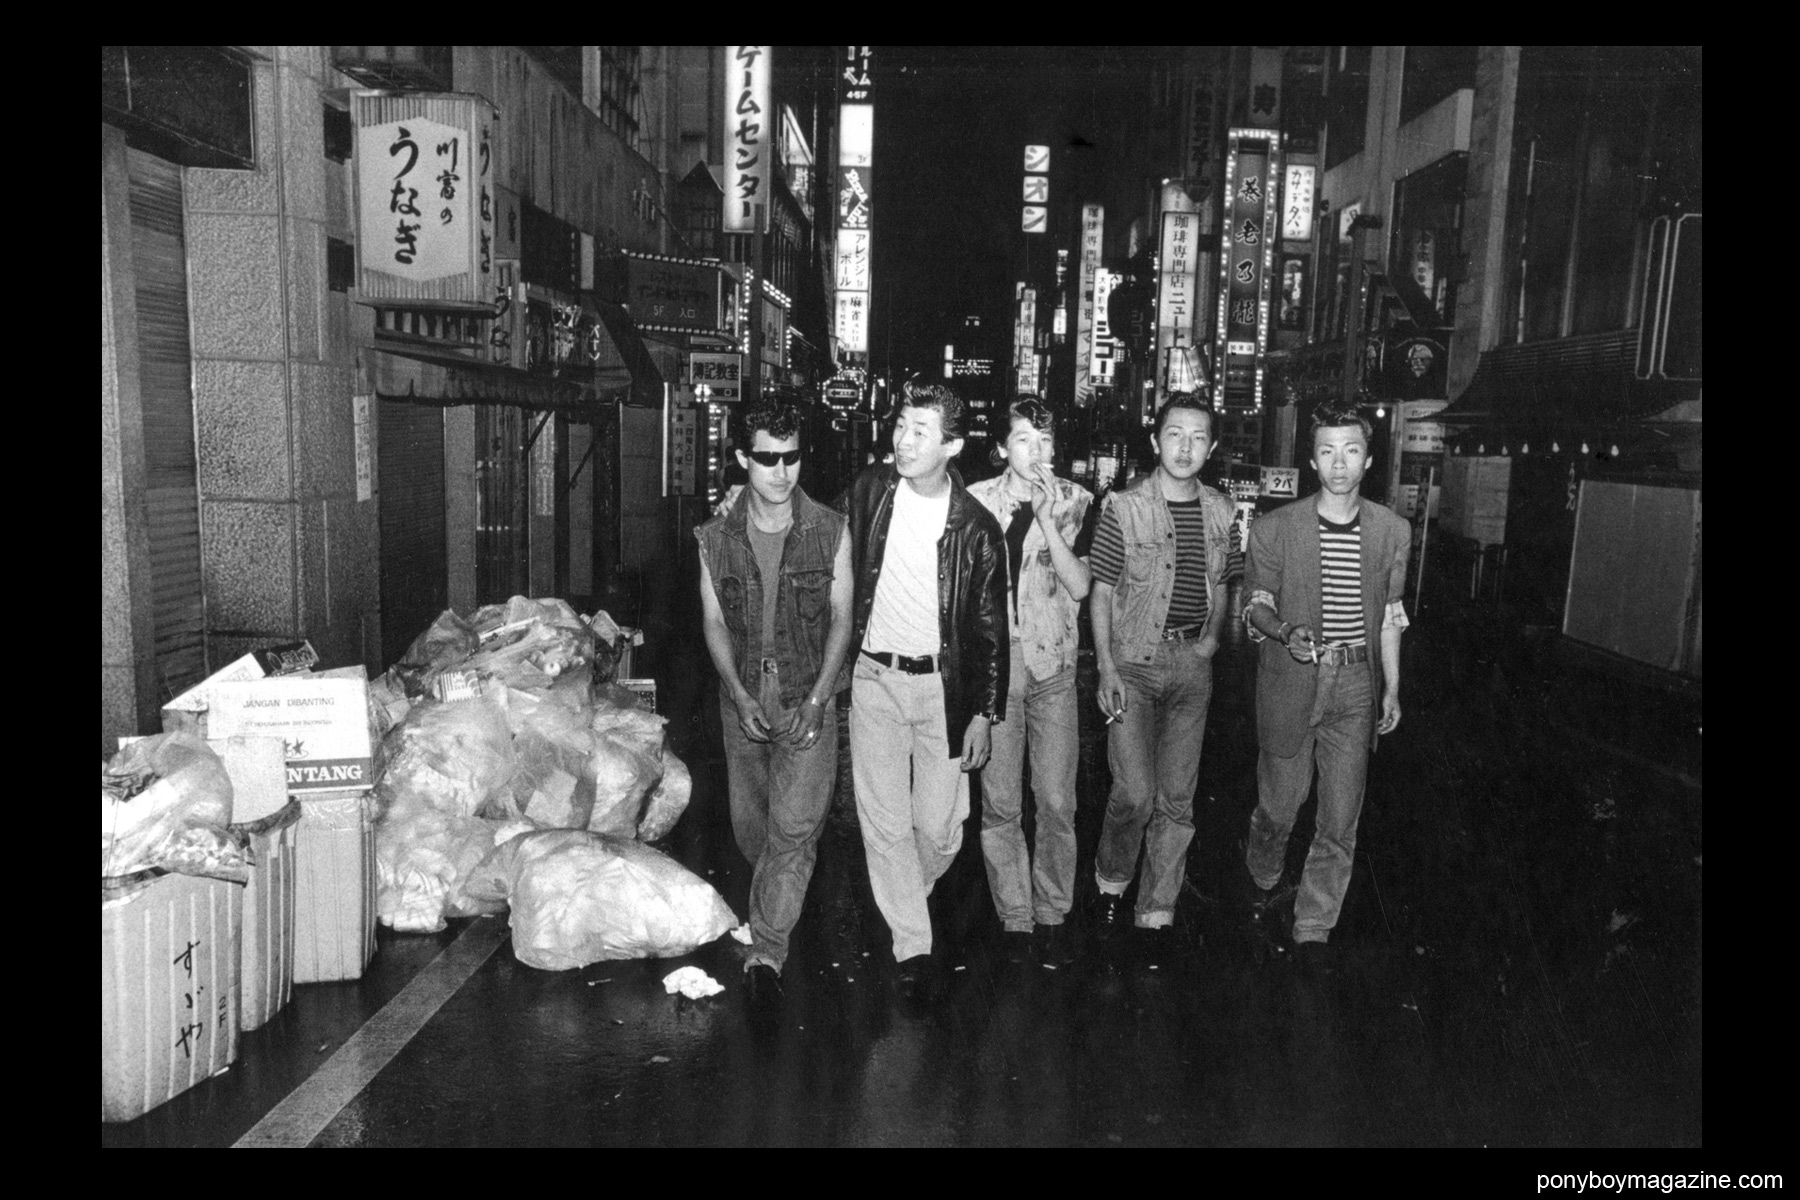 A group of gang members in the 1960's photographed by Watanabe Katsumi in the book Gangs of Kabukicho.